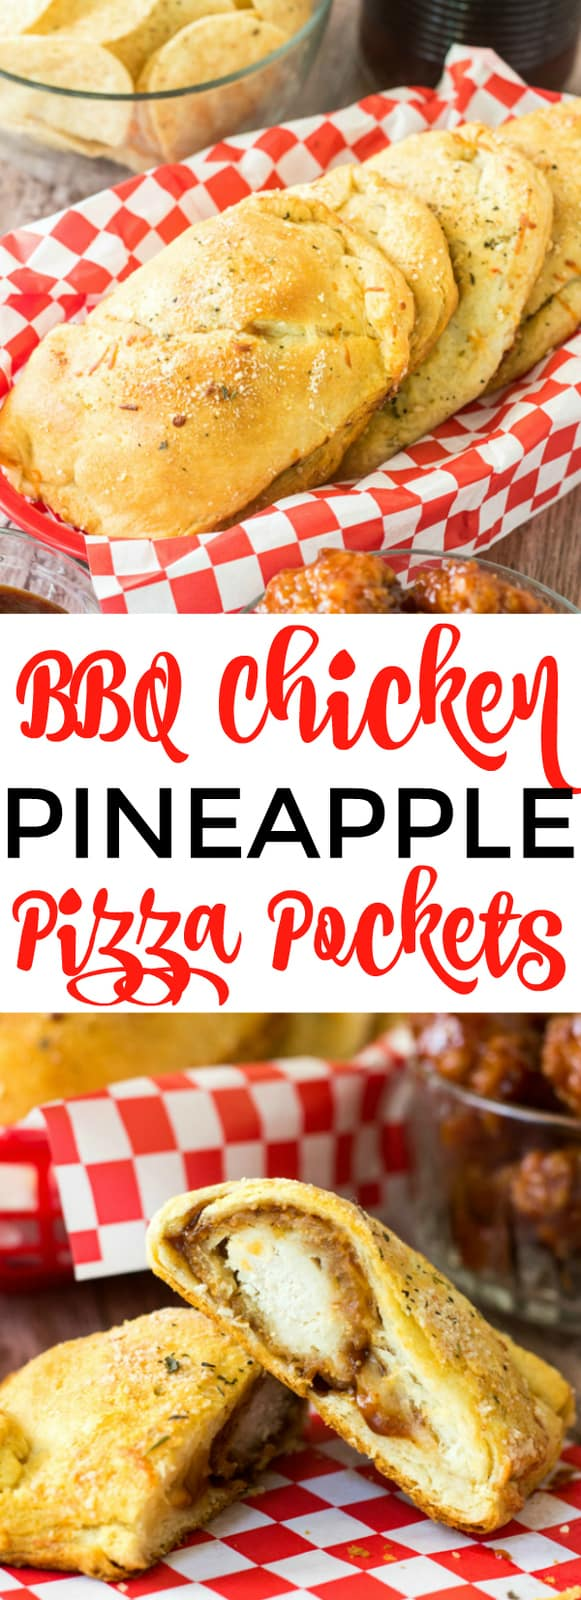 BBQ Chicken Pineapple Pizza Pockets